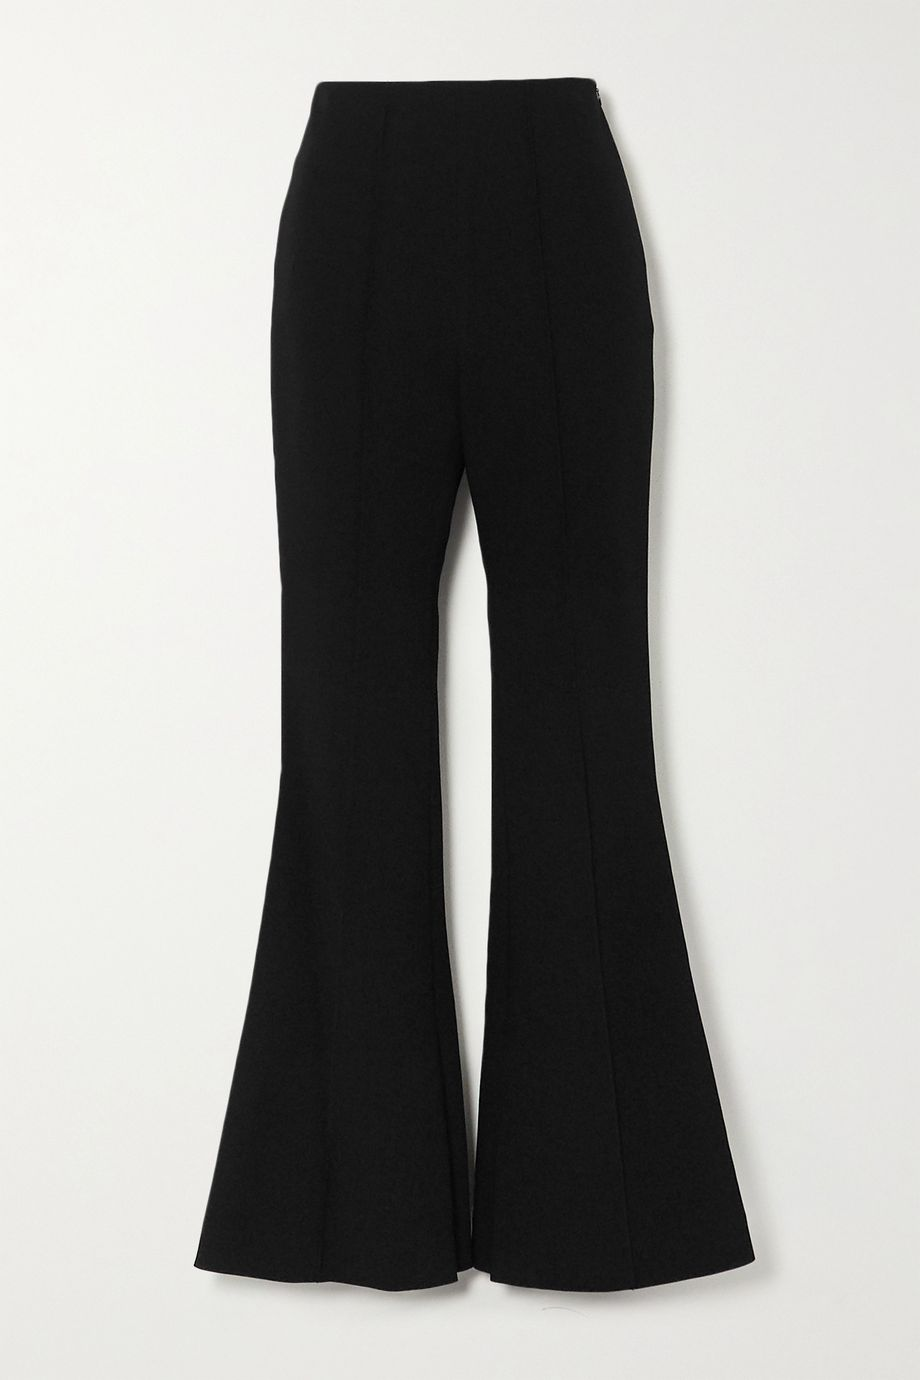 LOW CLASSIC Crepe flared pants